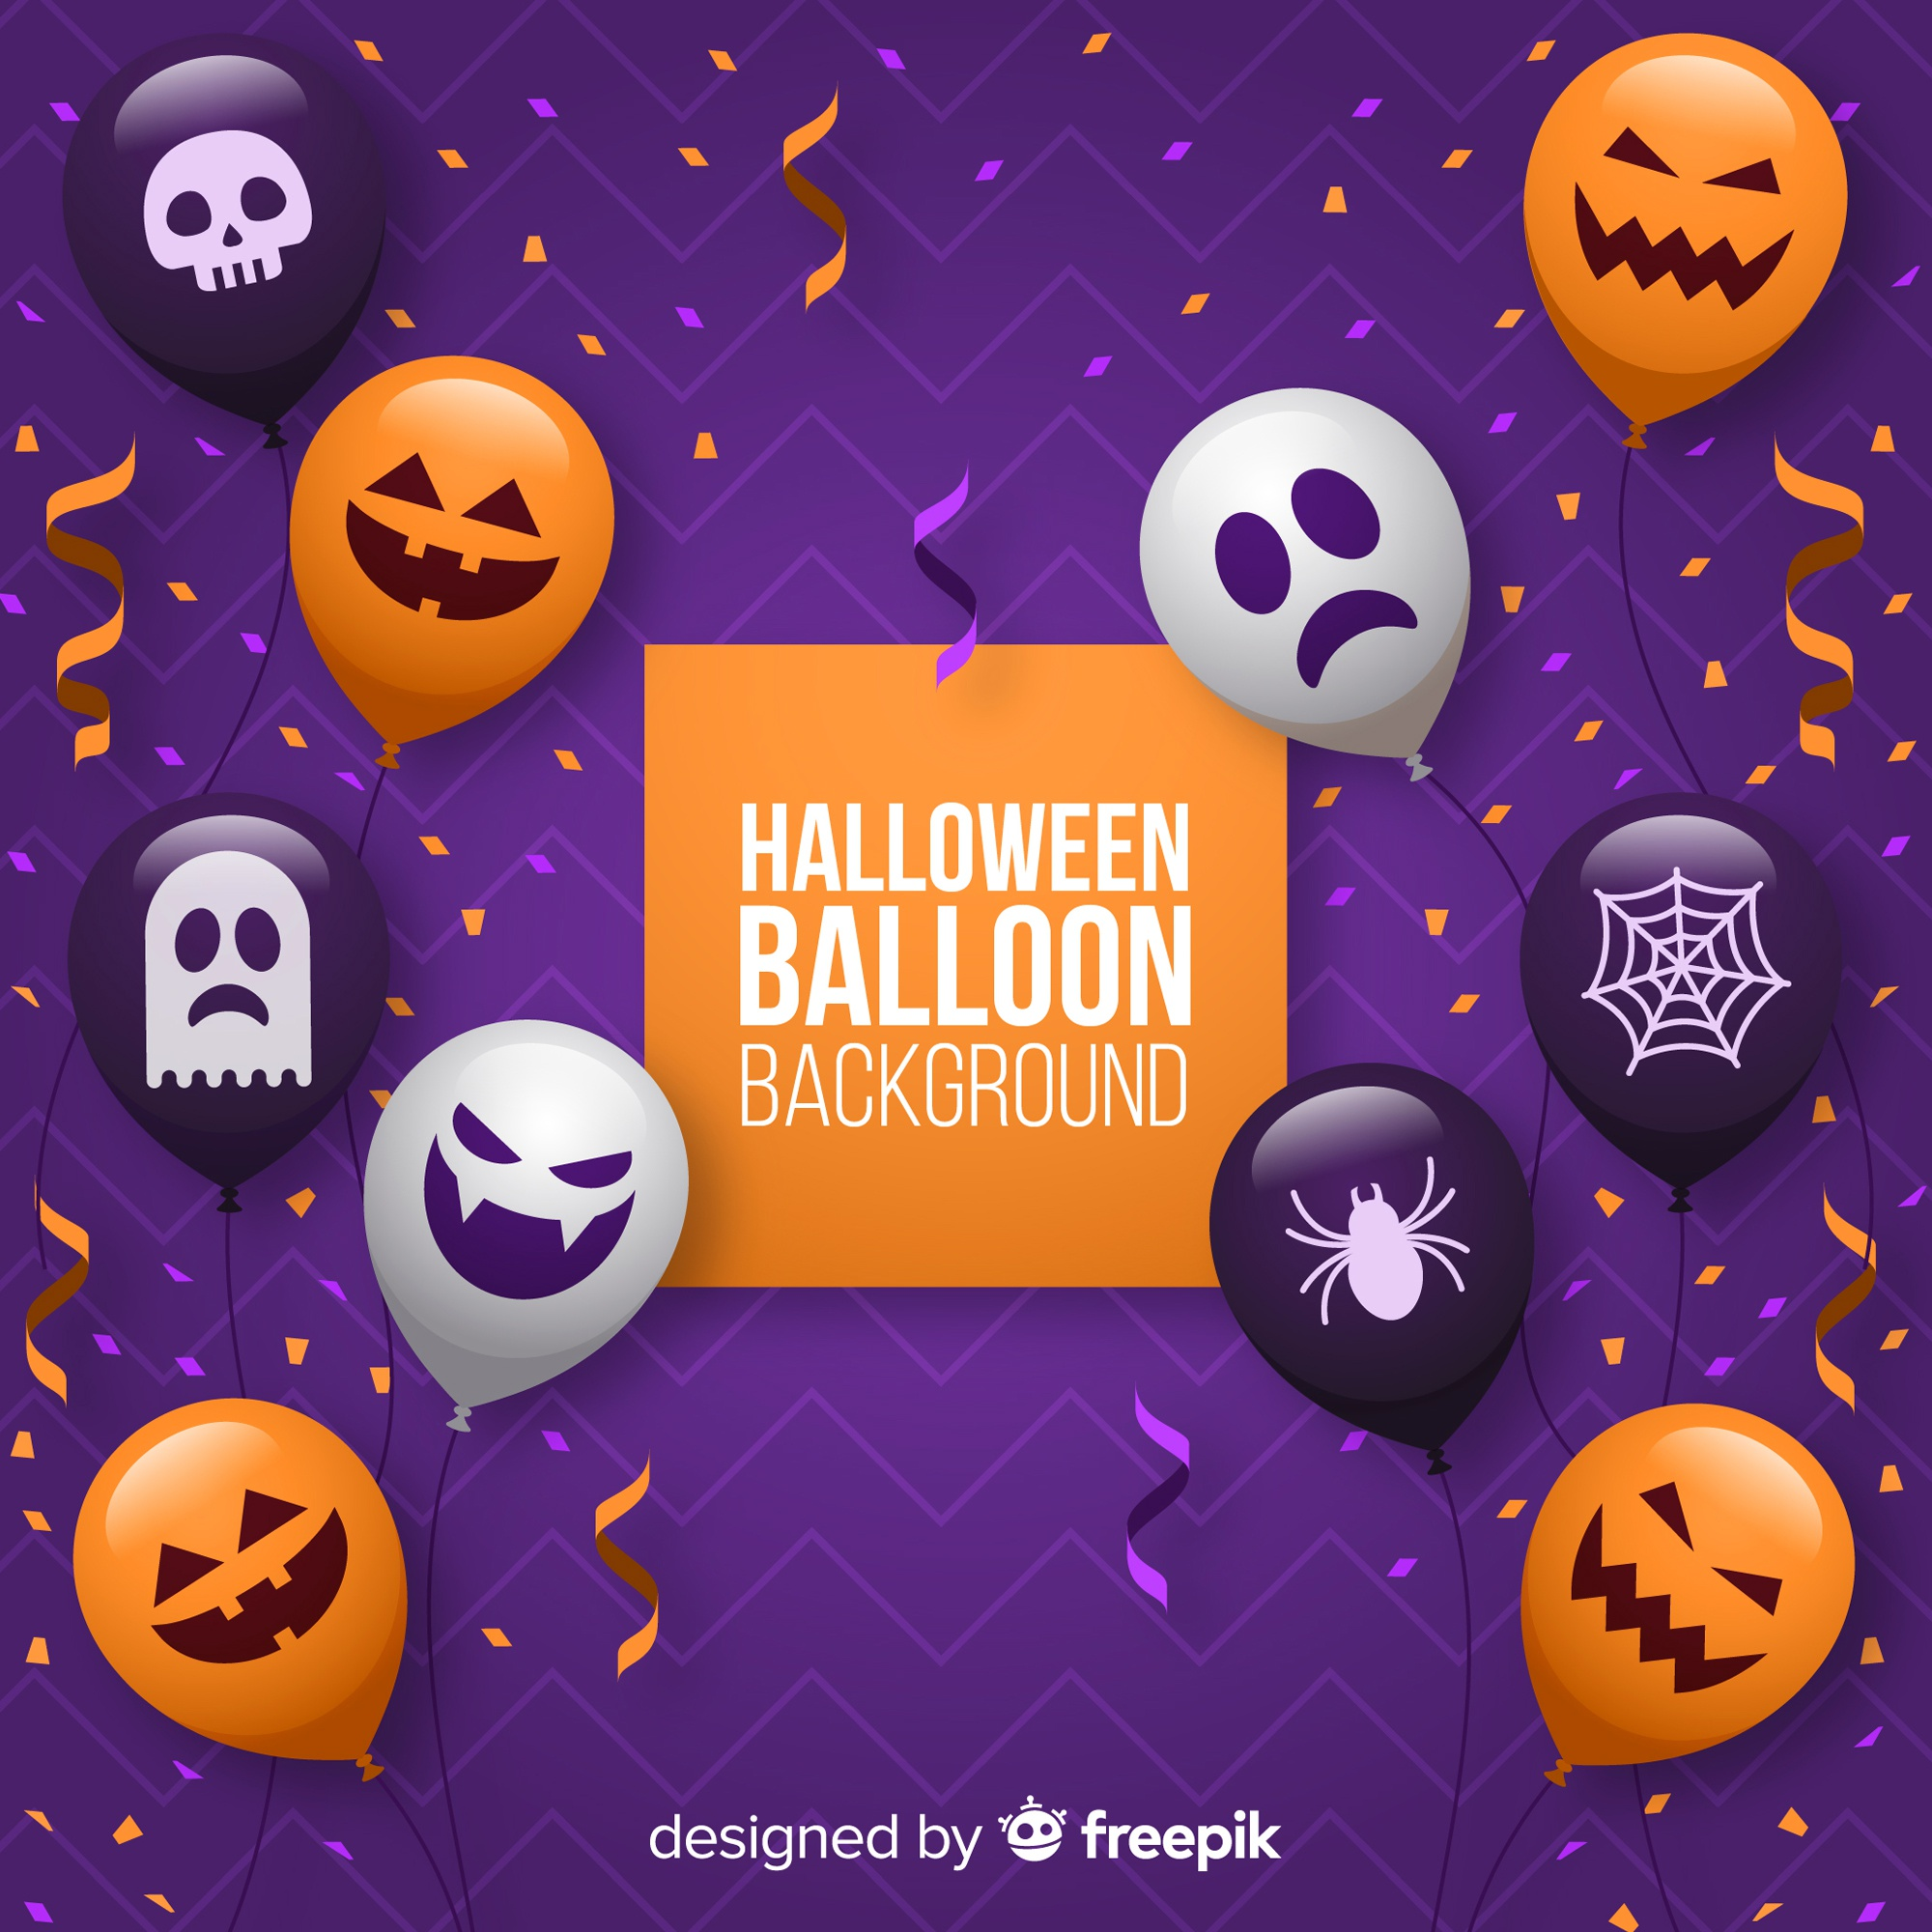 Halloween balloon background